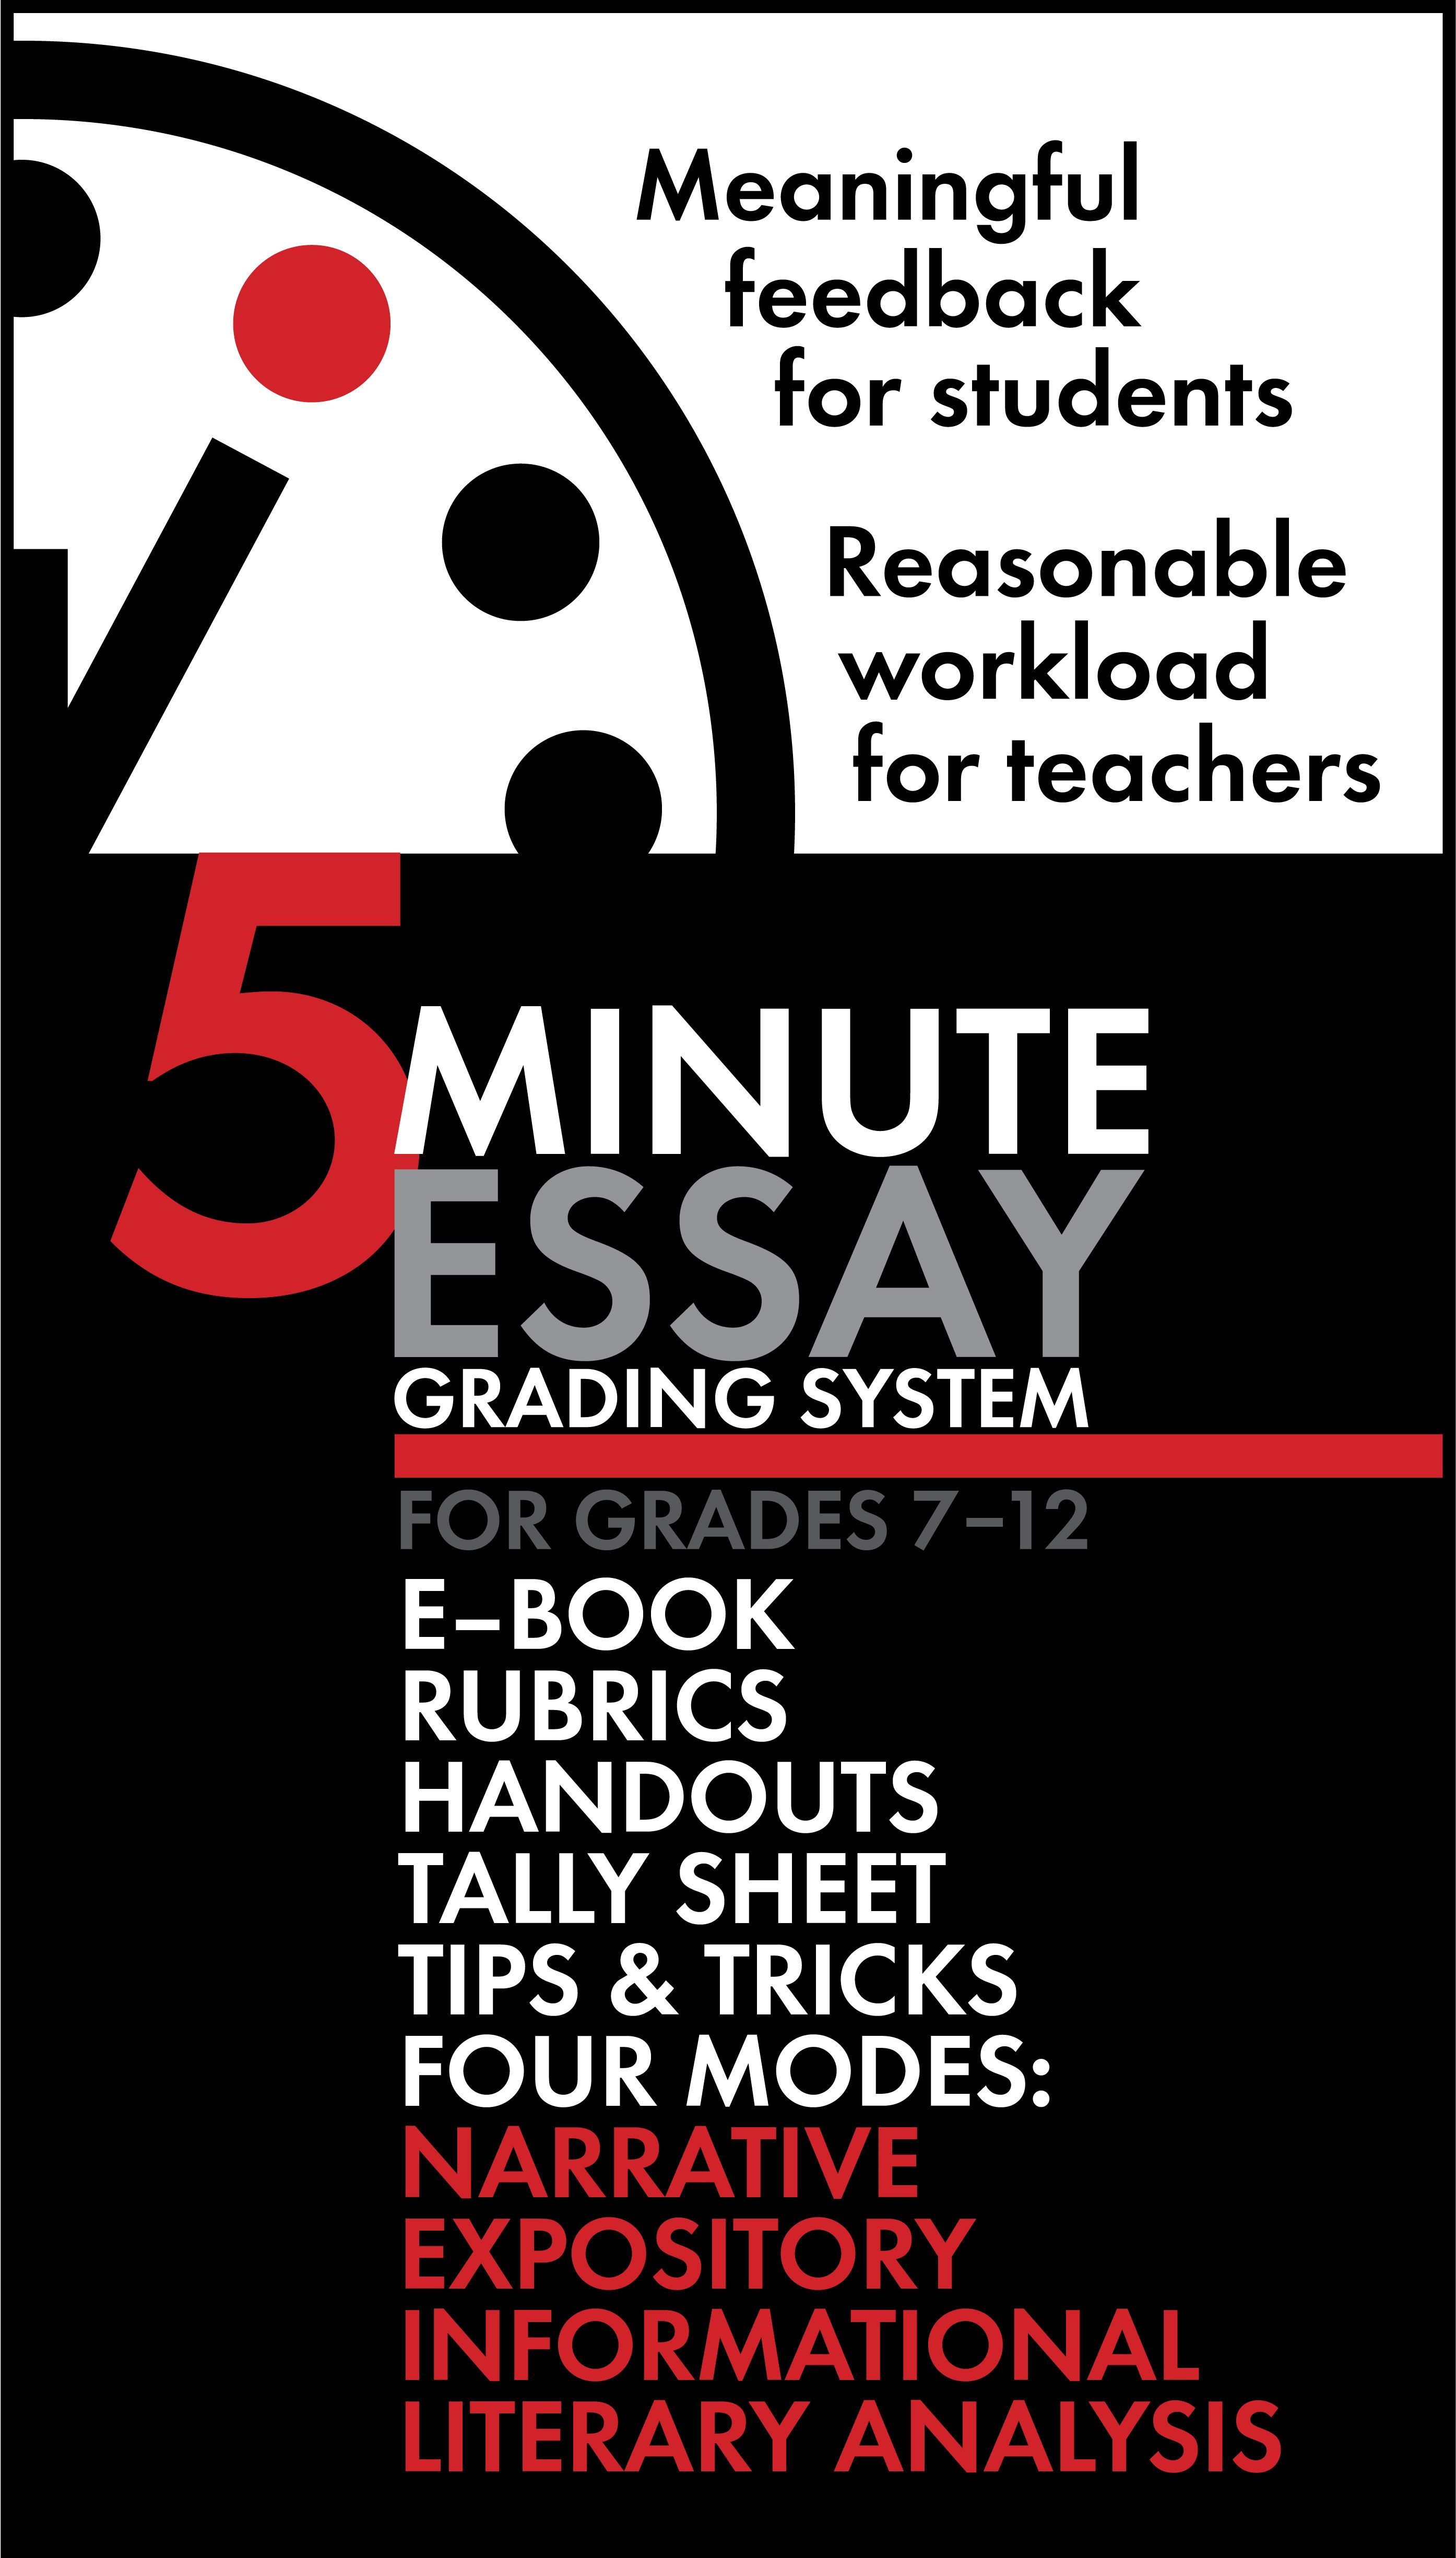 Cheap Essay Papers You Also Though Need To Have Time To Recharge On Weekends Without The  Burden Of Endless Essay Grading  Best English Essays also Help With Essay Papers You Want Your Students To Receive Meaningful Feedback On Their  Fahrenheit 451 Essay Thesis